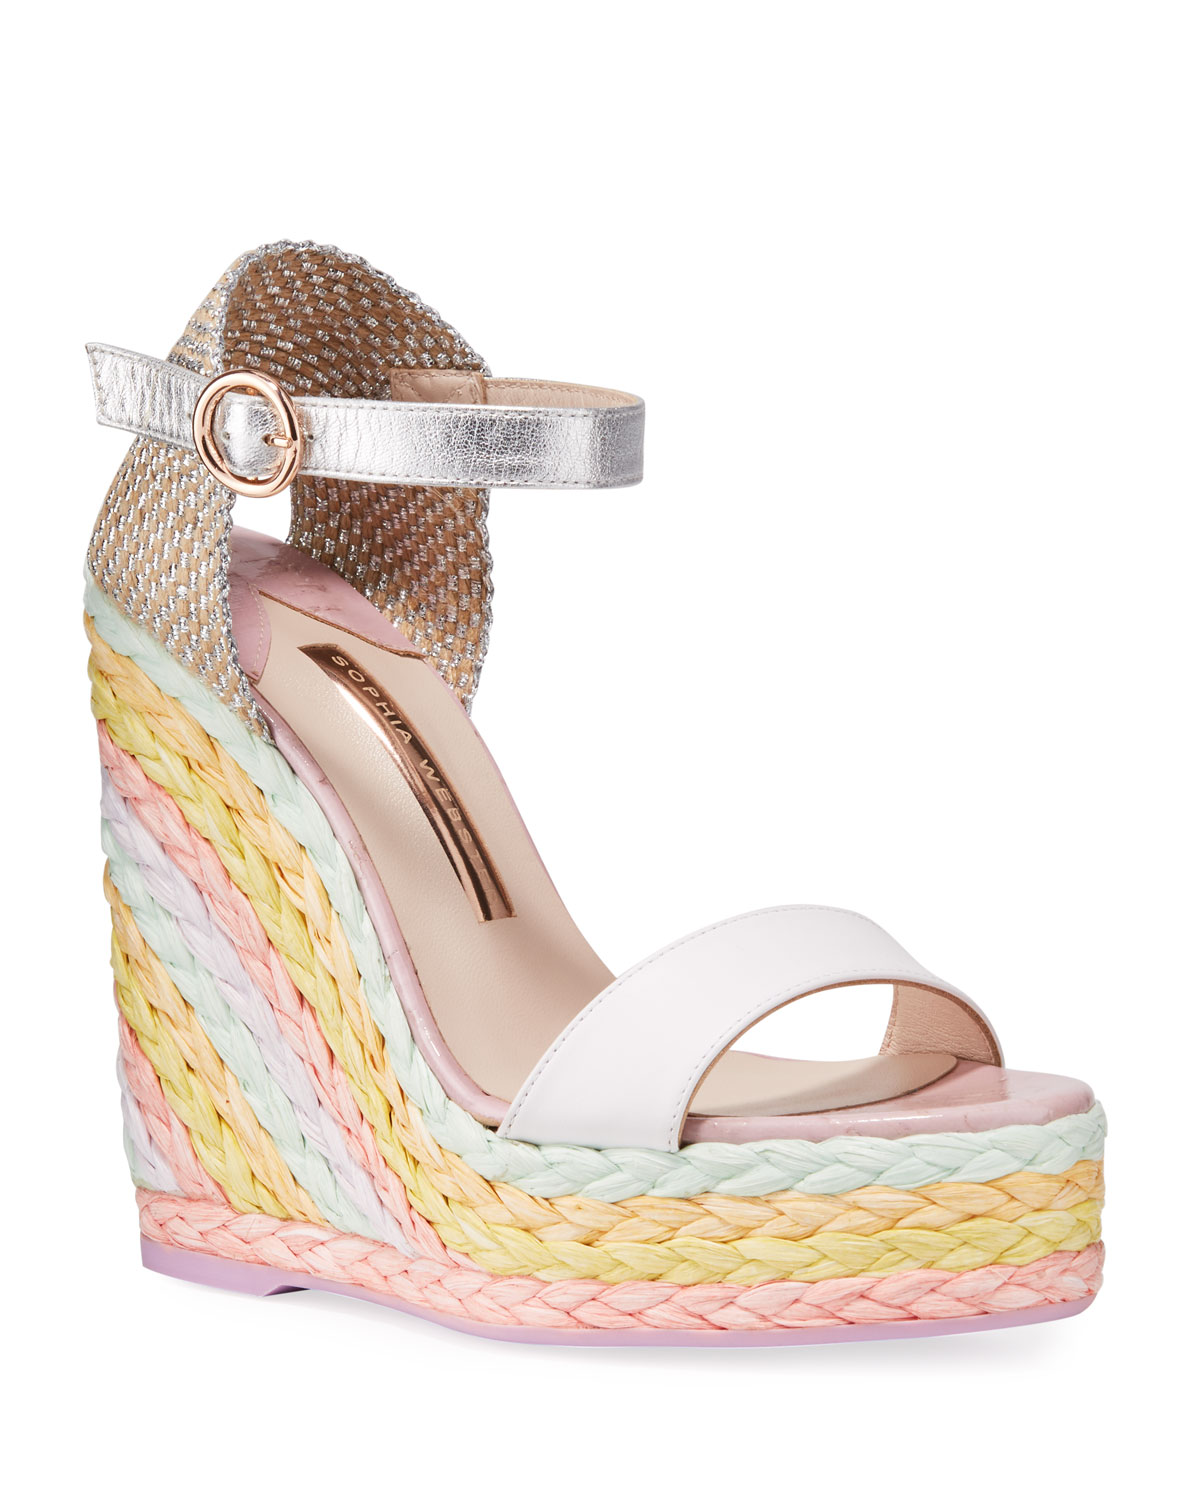 Sophia Webster Lucita Wedge Espadrilles with Pastel Heel